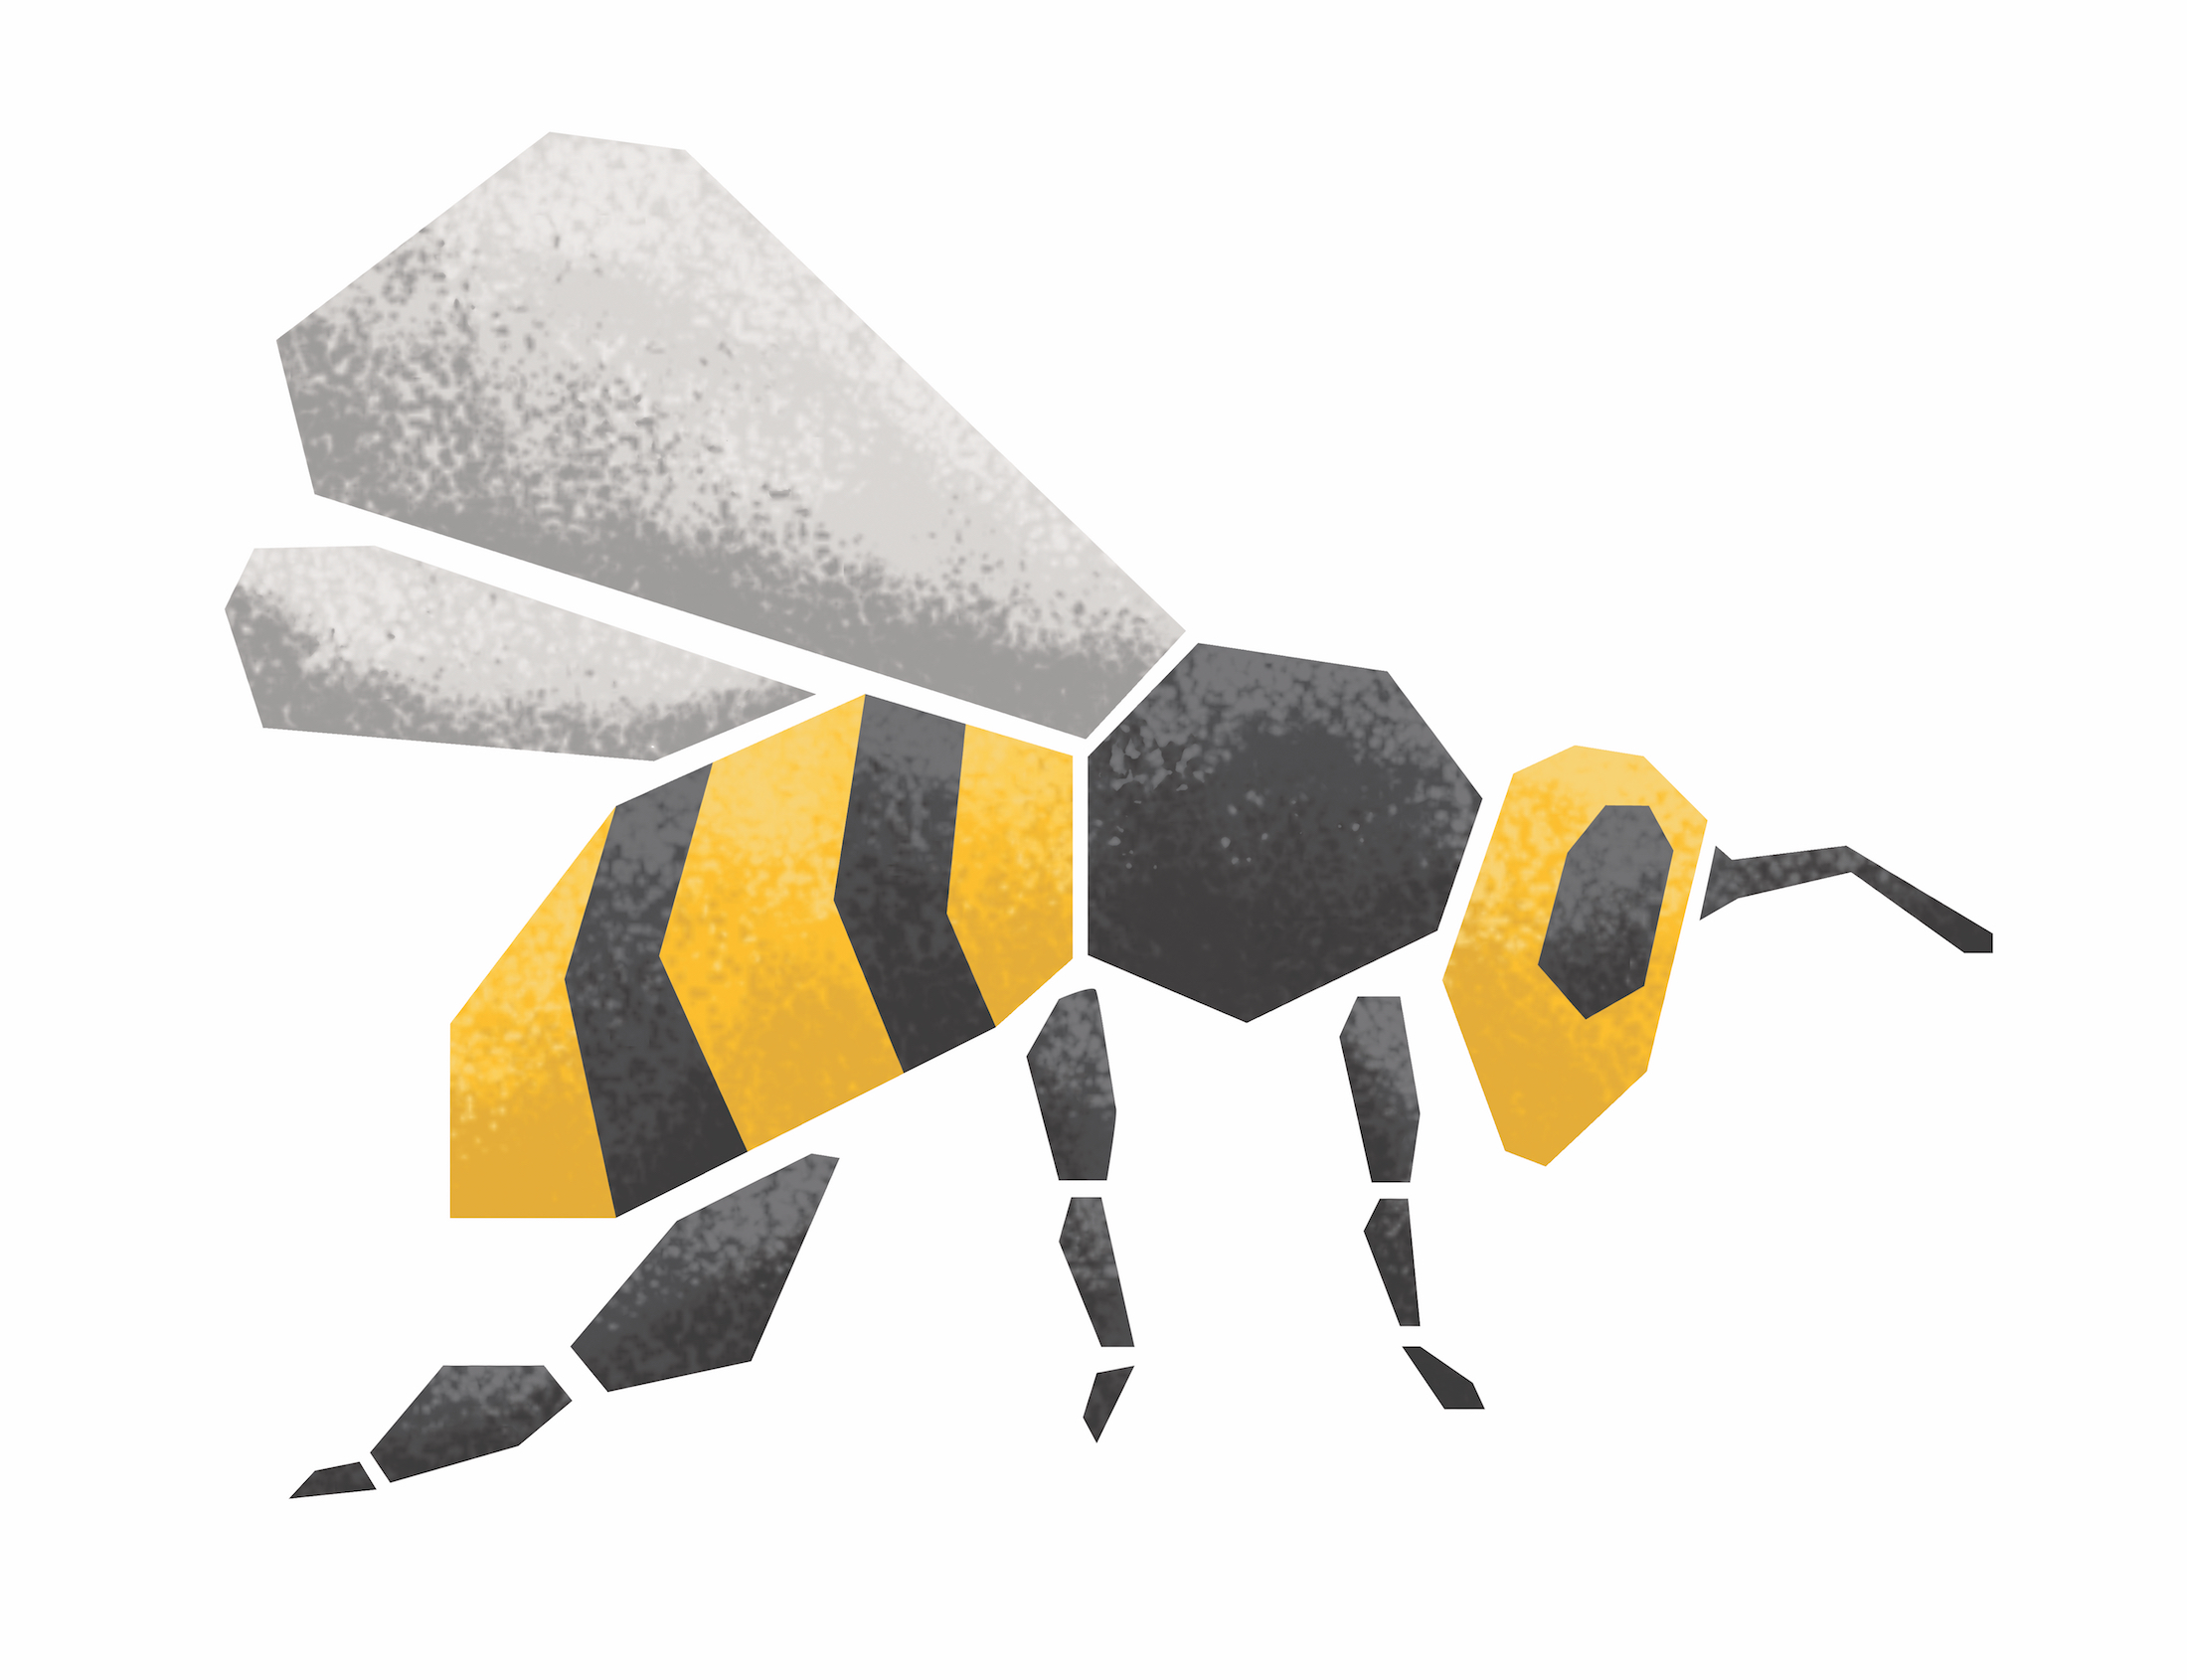 bee the first to know! - Fill out the form below to join our mailing list, send us a message, or feel free to send a direct email at pollinators@pollinator.work